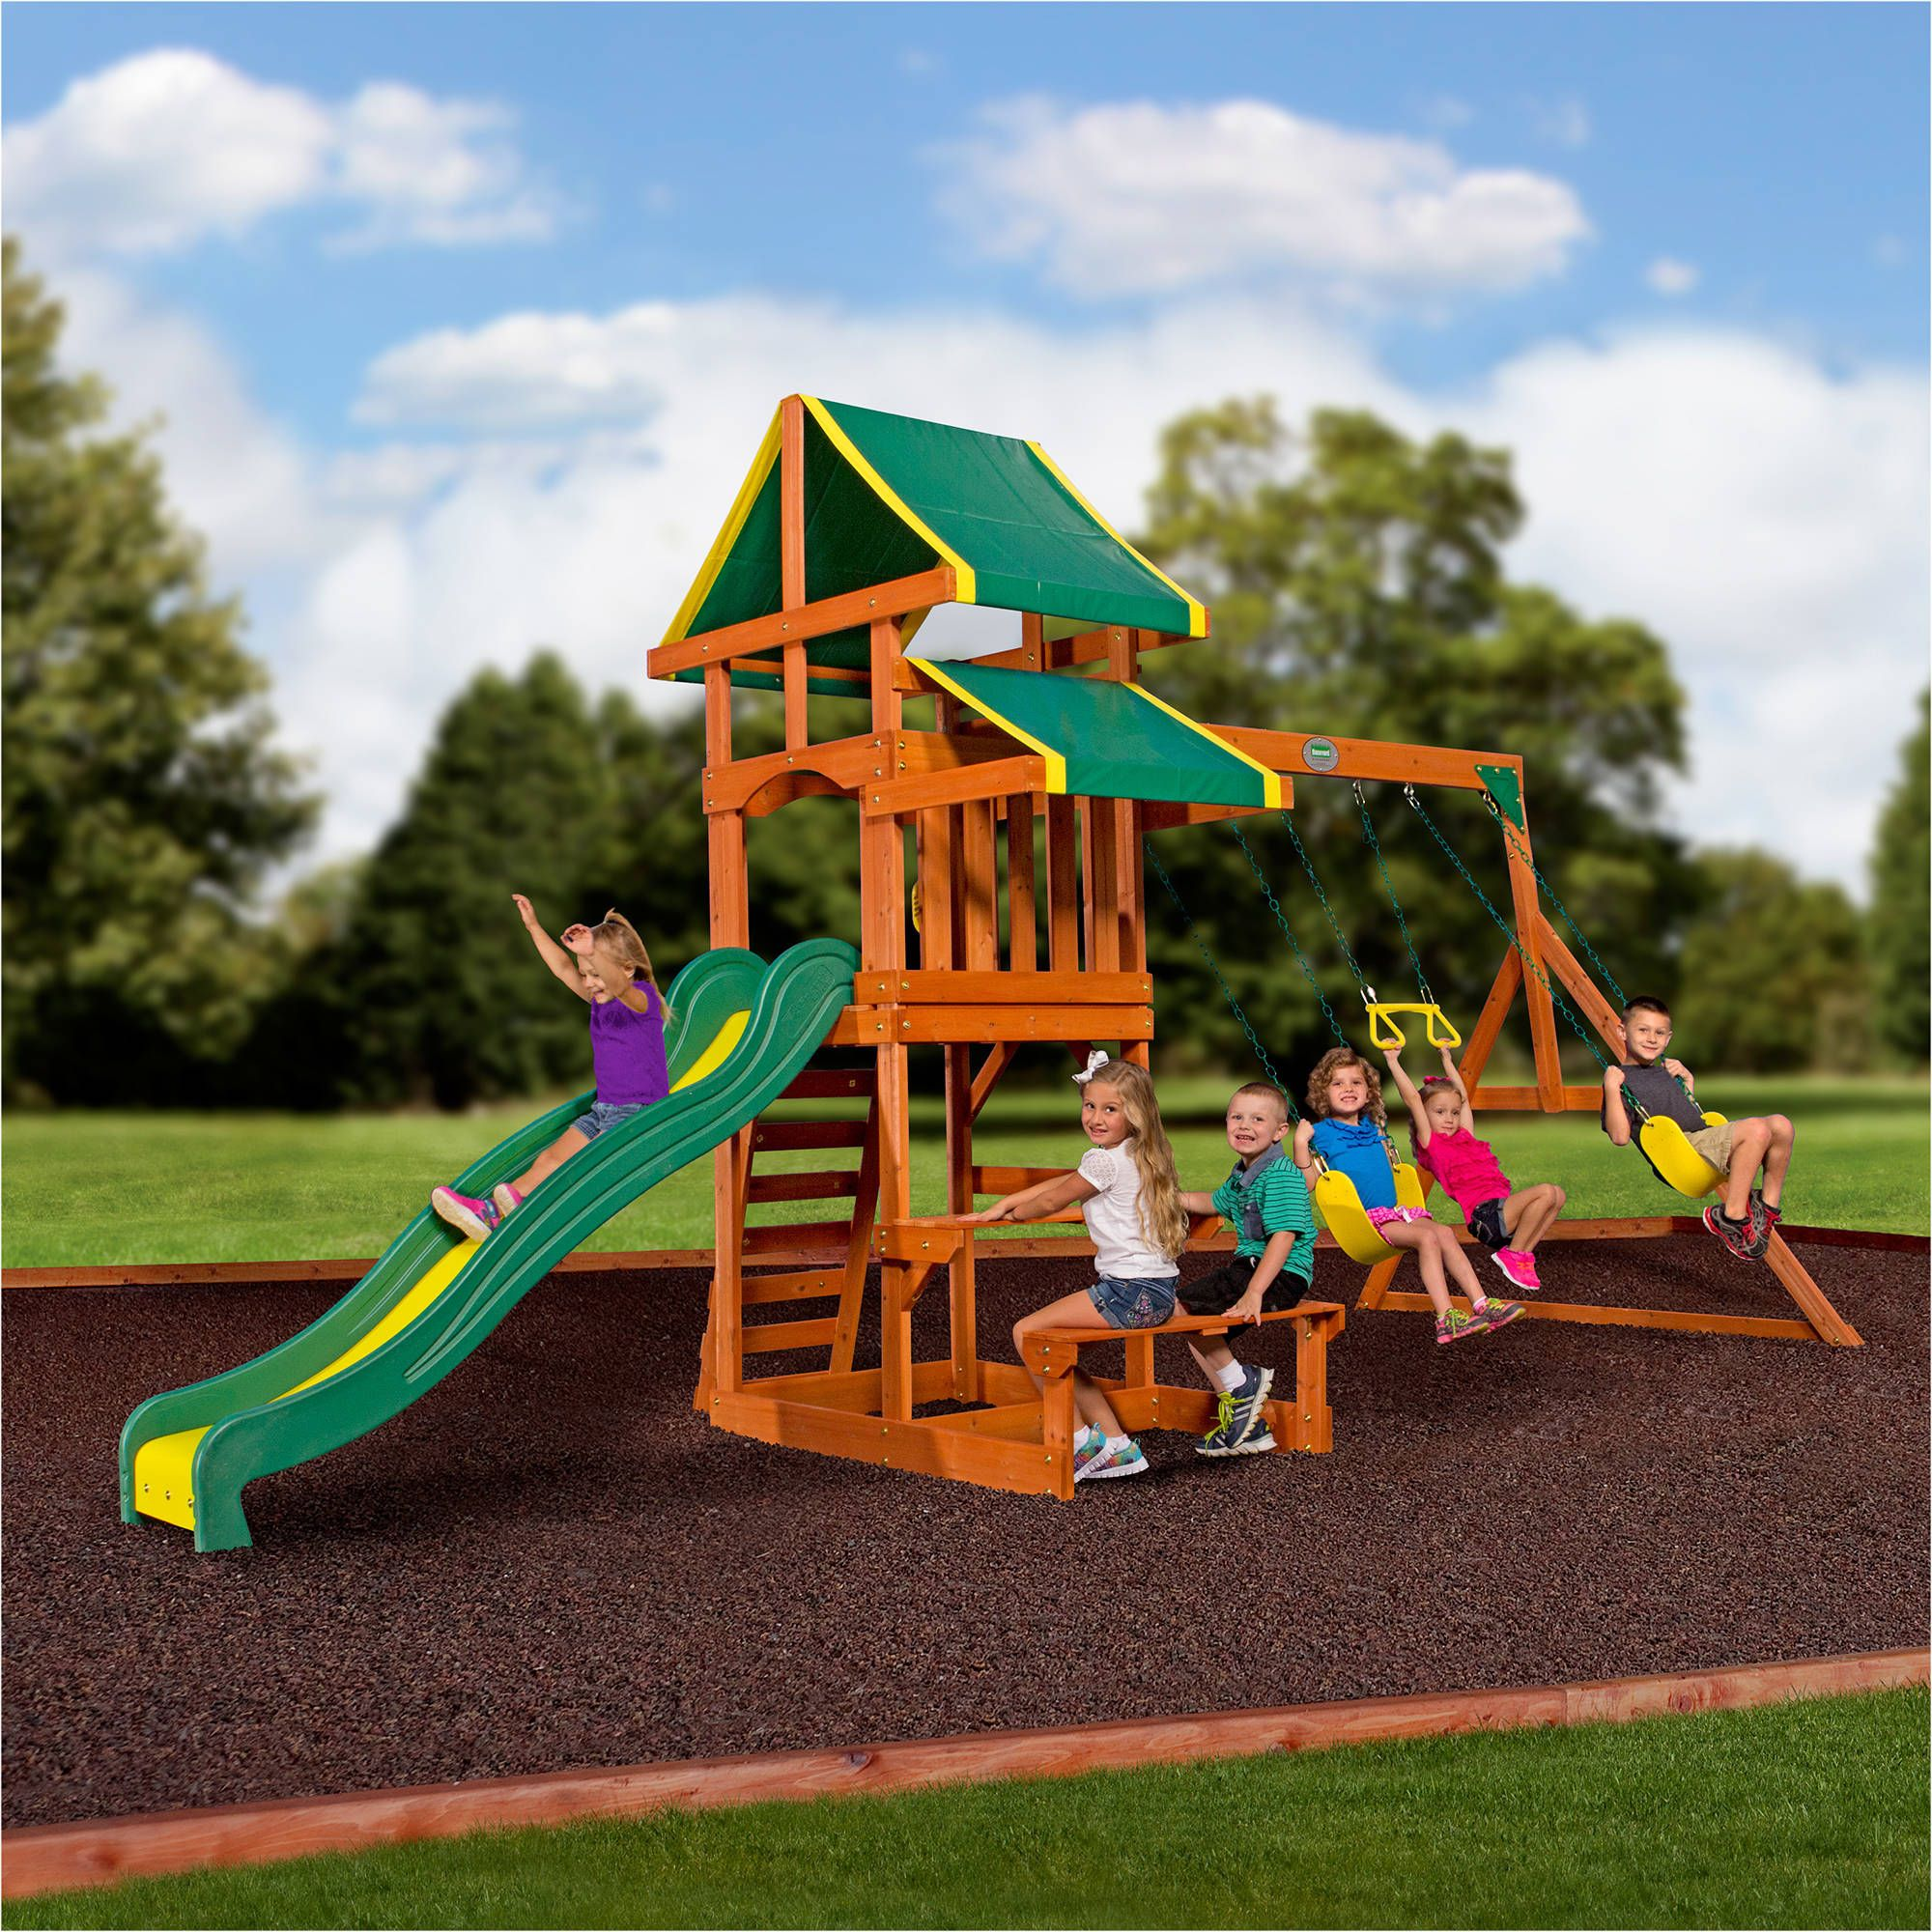 Toys With Images Wooden Swing Set Backyard For Kids Toddler